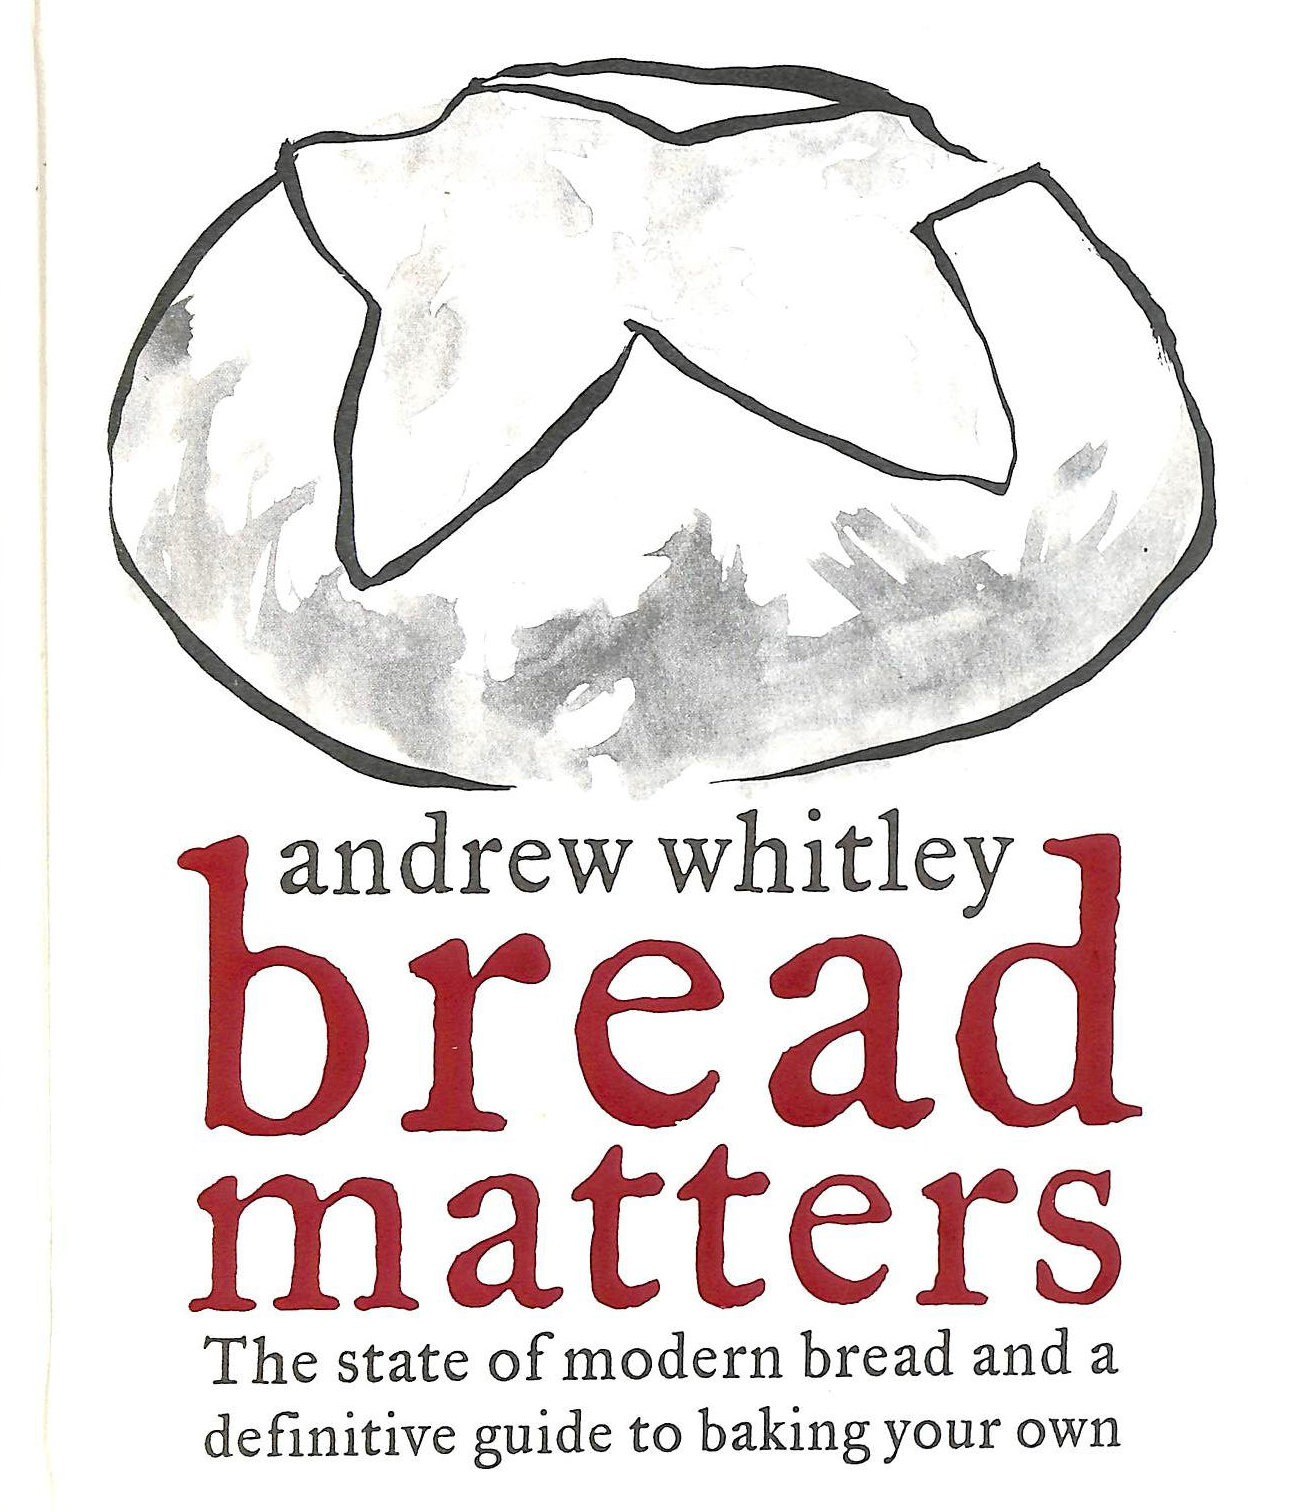 Image for Bread Matters. The state of modern bread and a definitive guide to baking your own